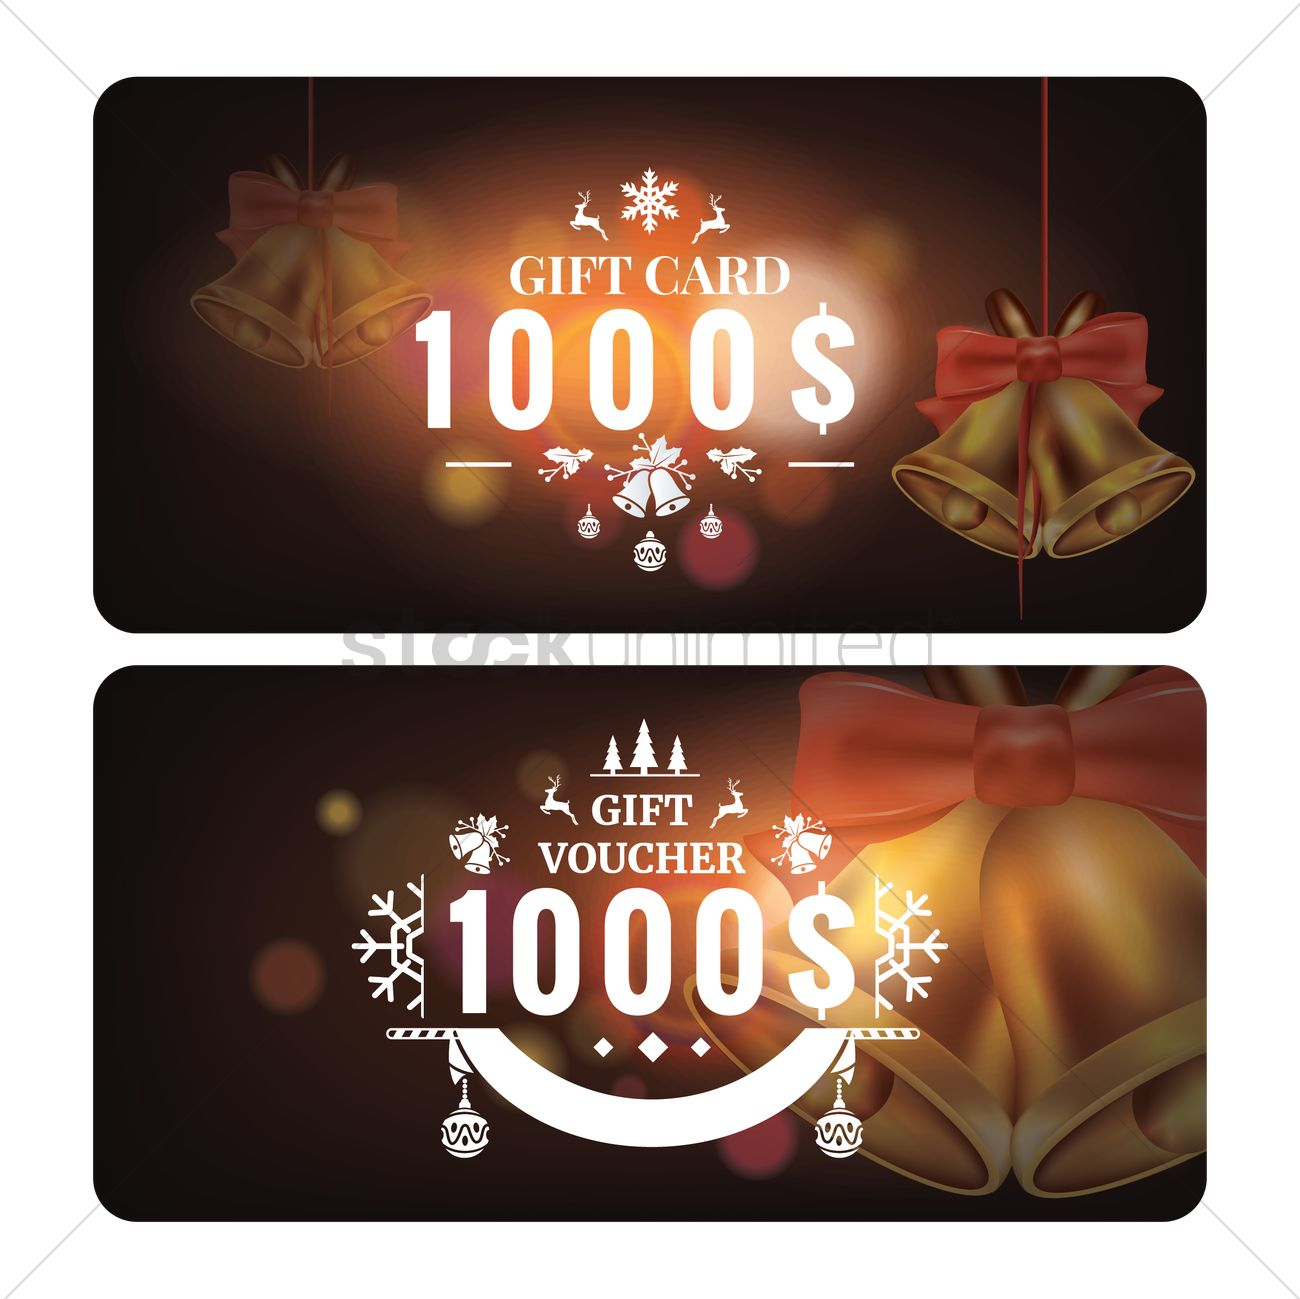 Christmas gift card Vector Image - 2009203 | StockUnlimited